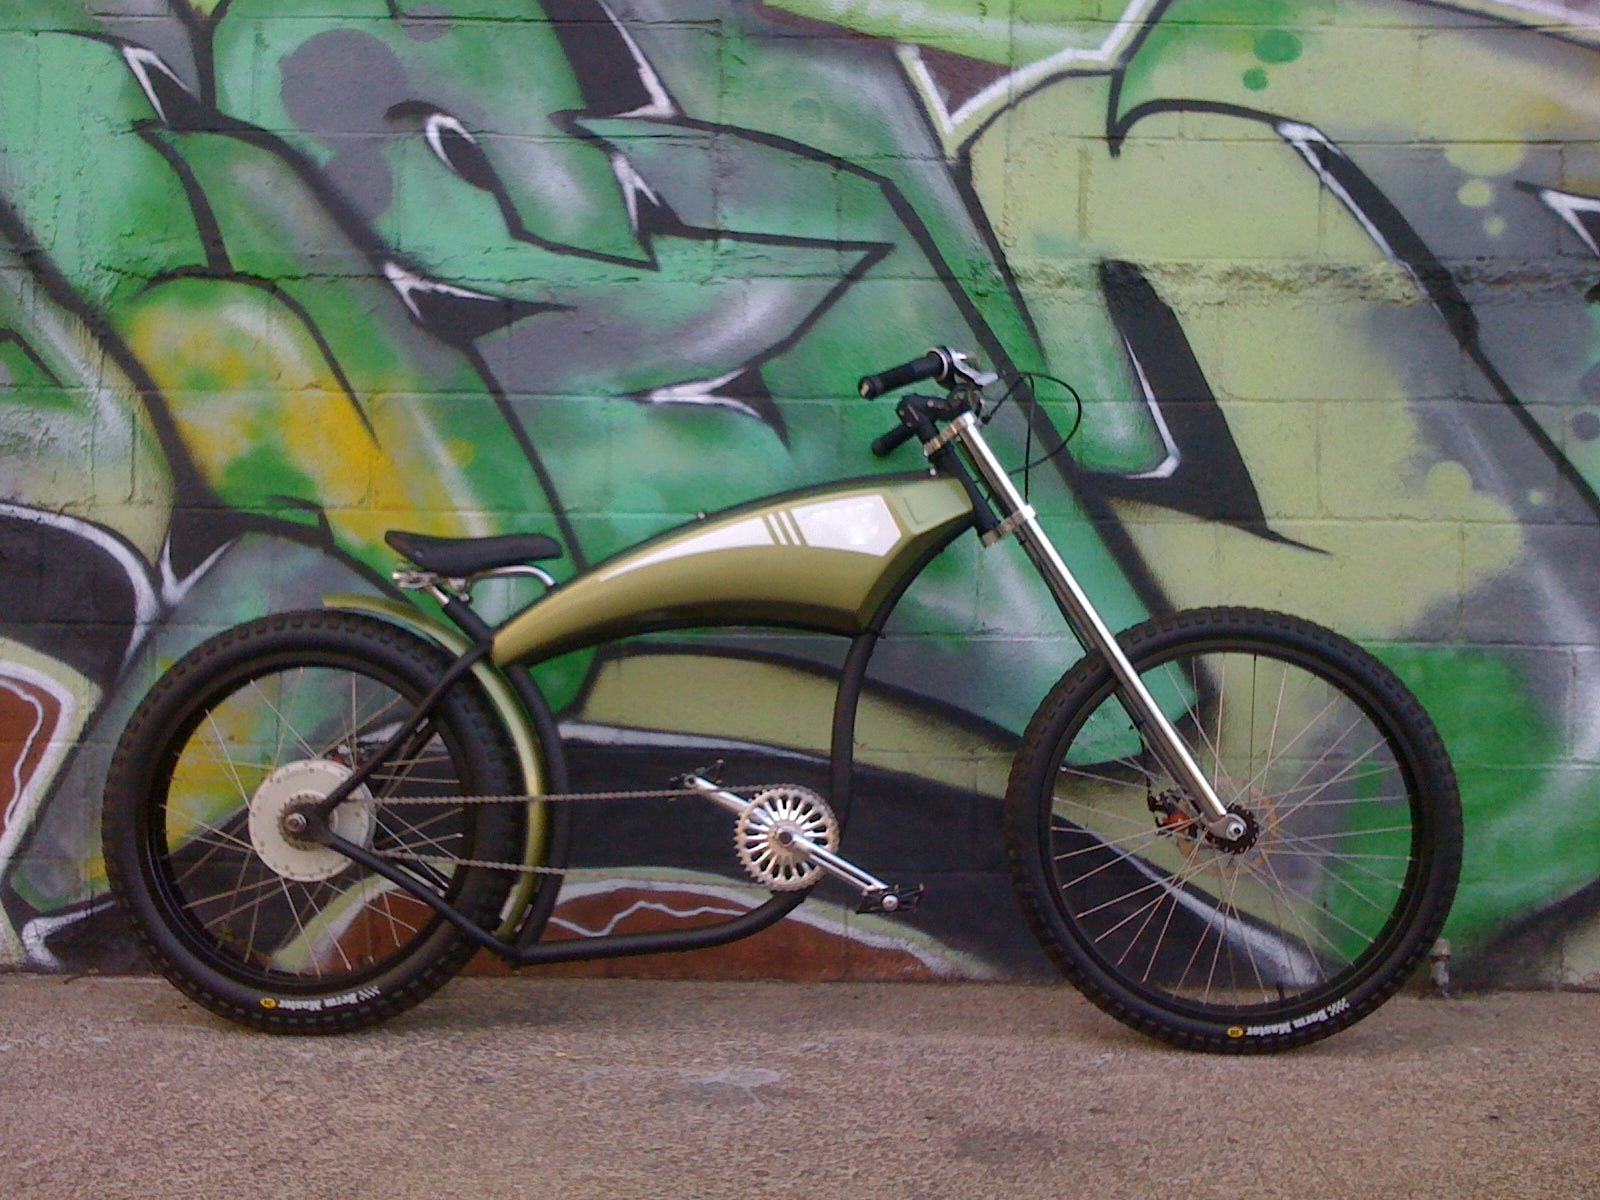 The Chopper Electric Street Bike 7, seen full from the right side